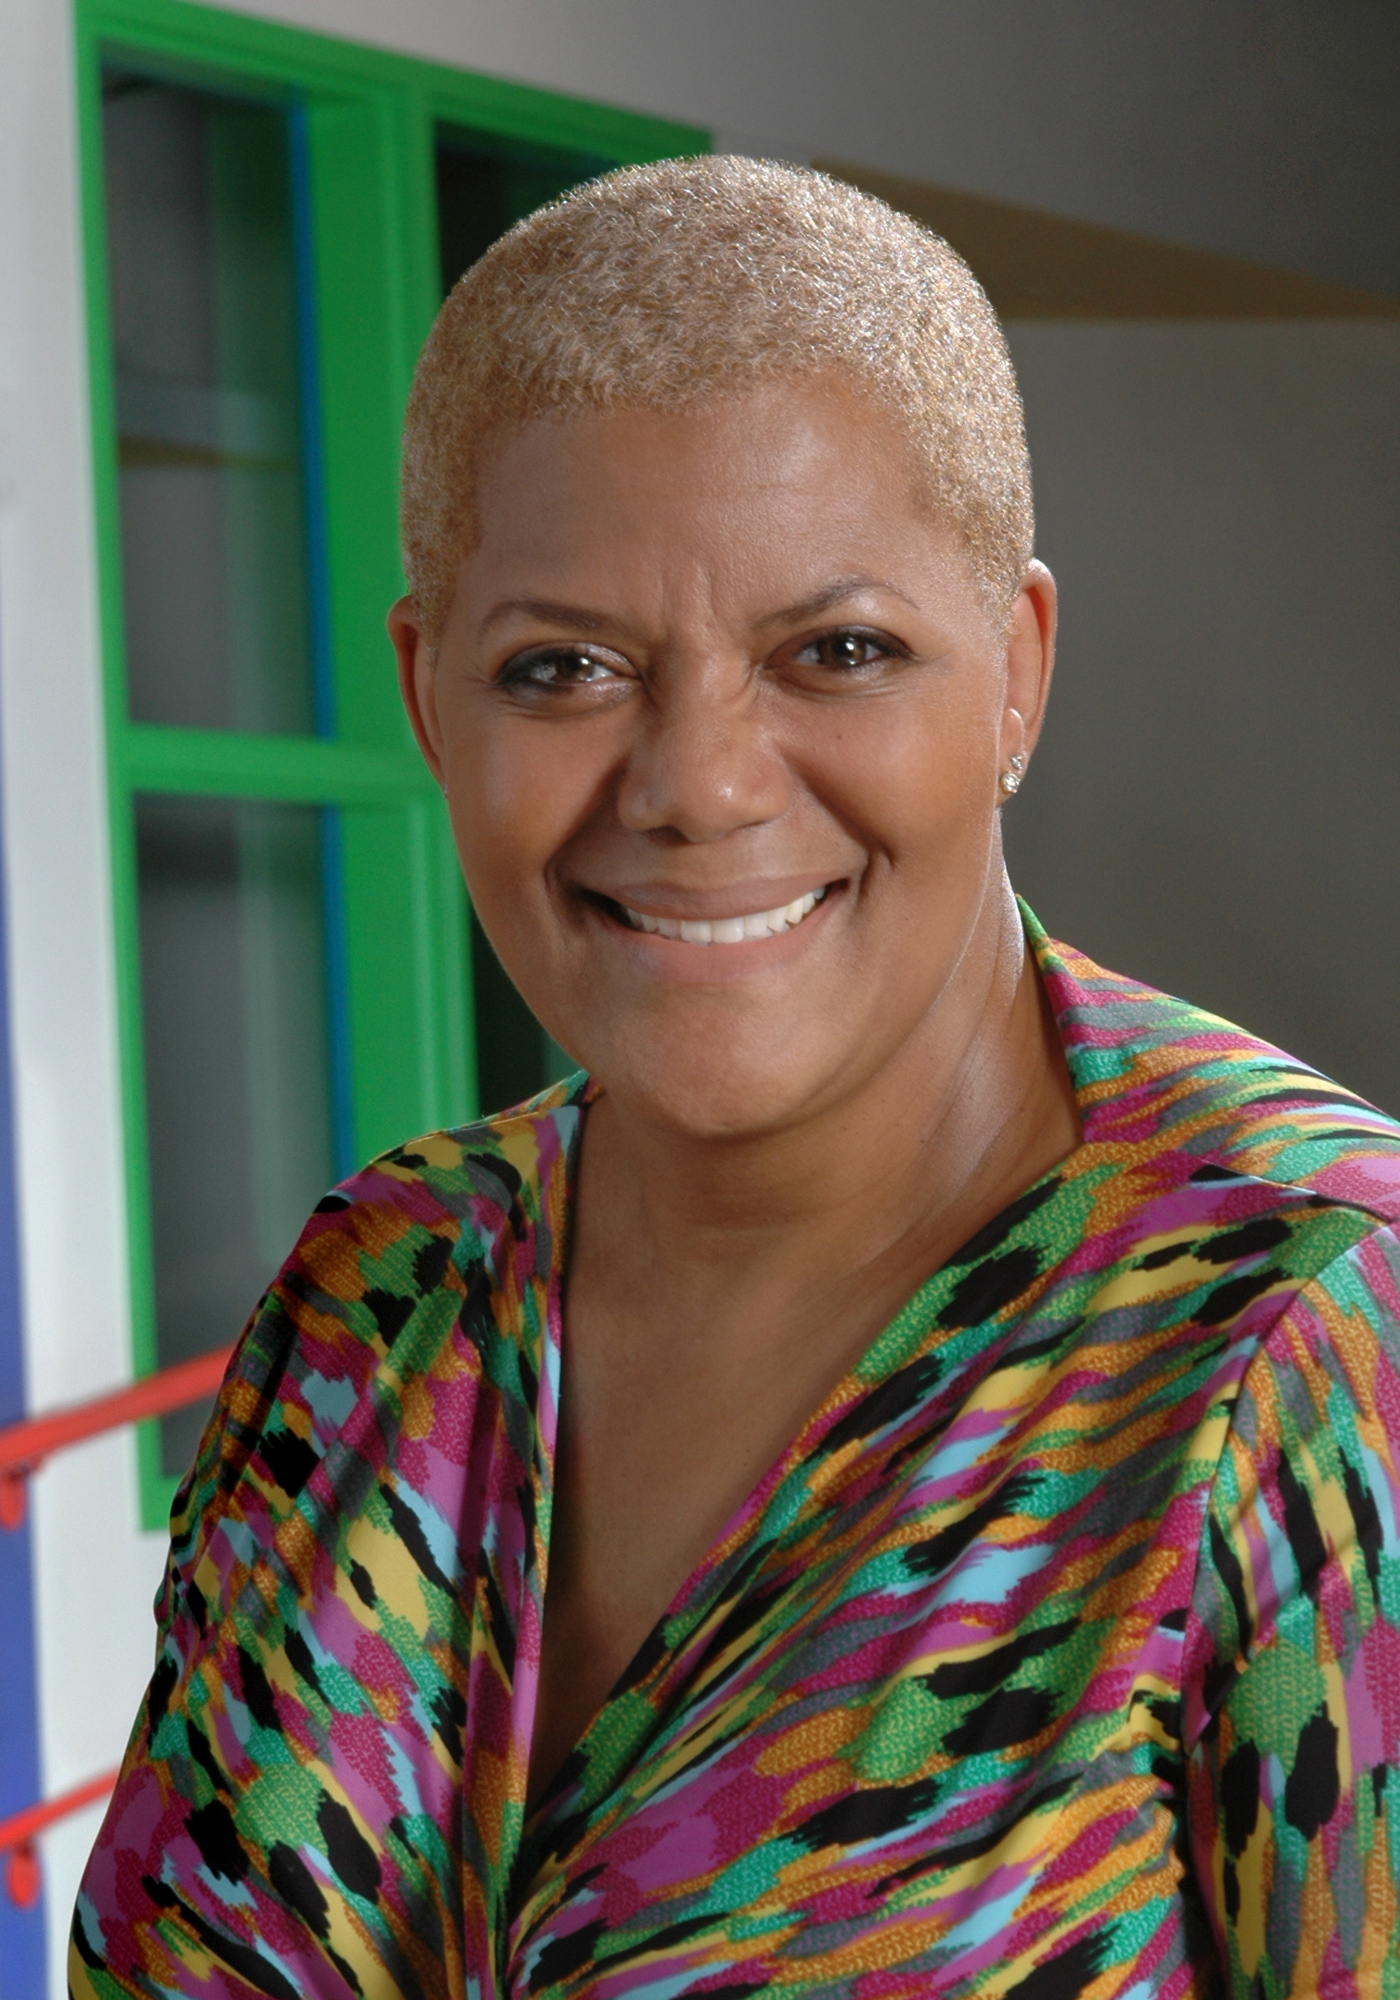 JACKLYN A. CHISHOLM, PH.D., President and CEO